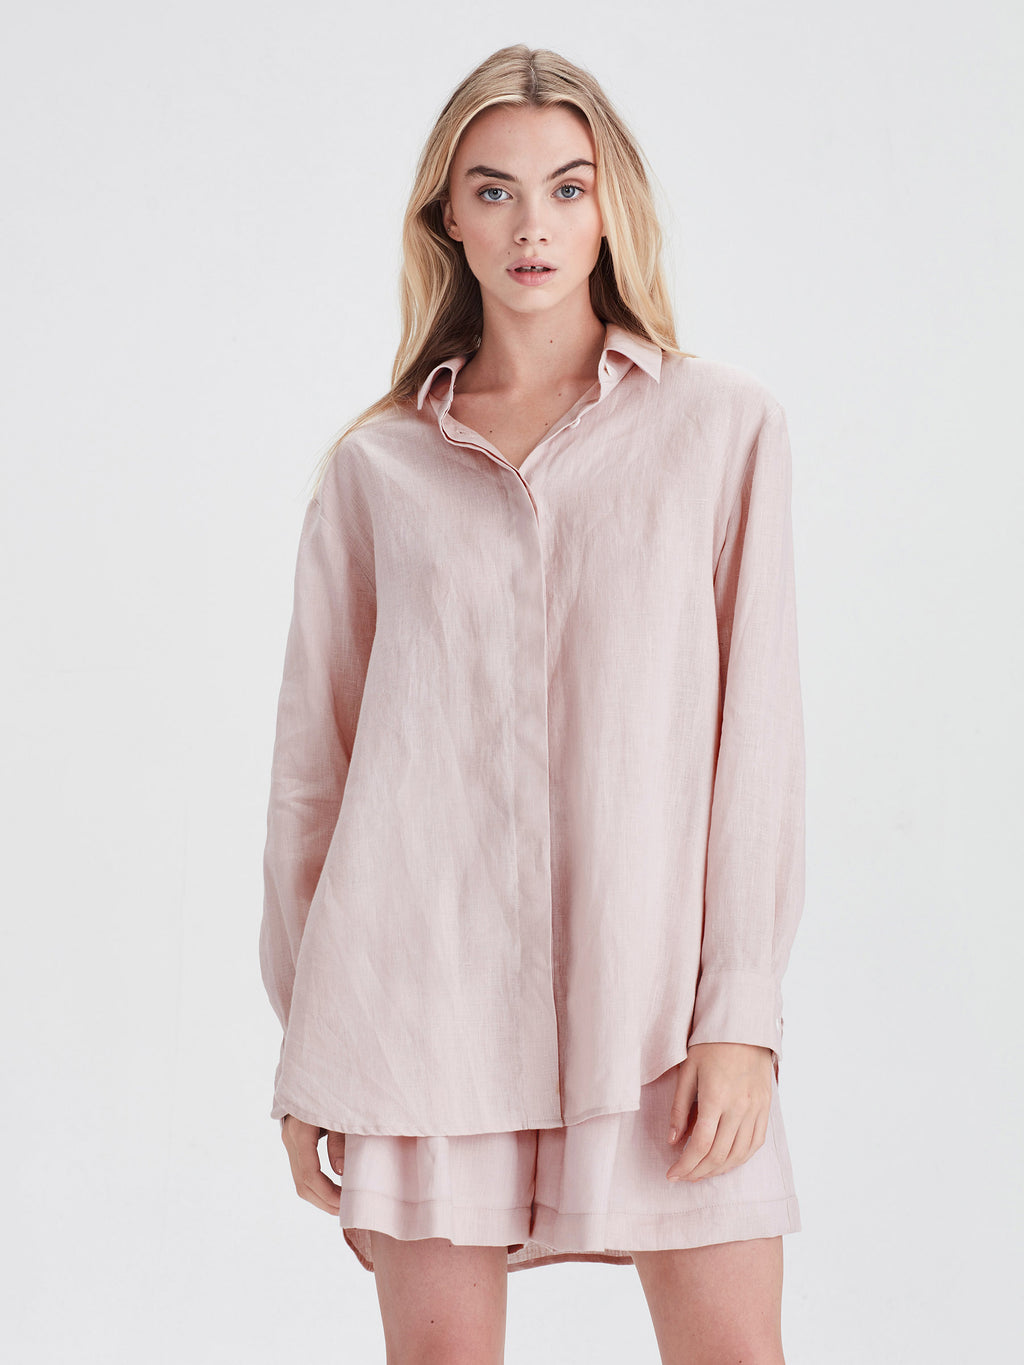 Beauden Shirt (Light Linen) Petal